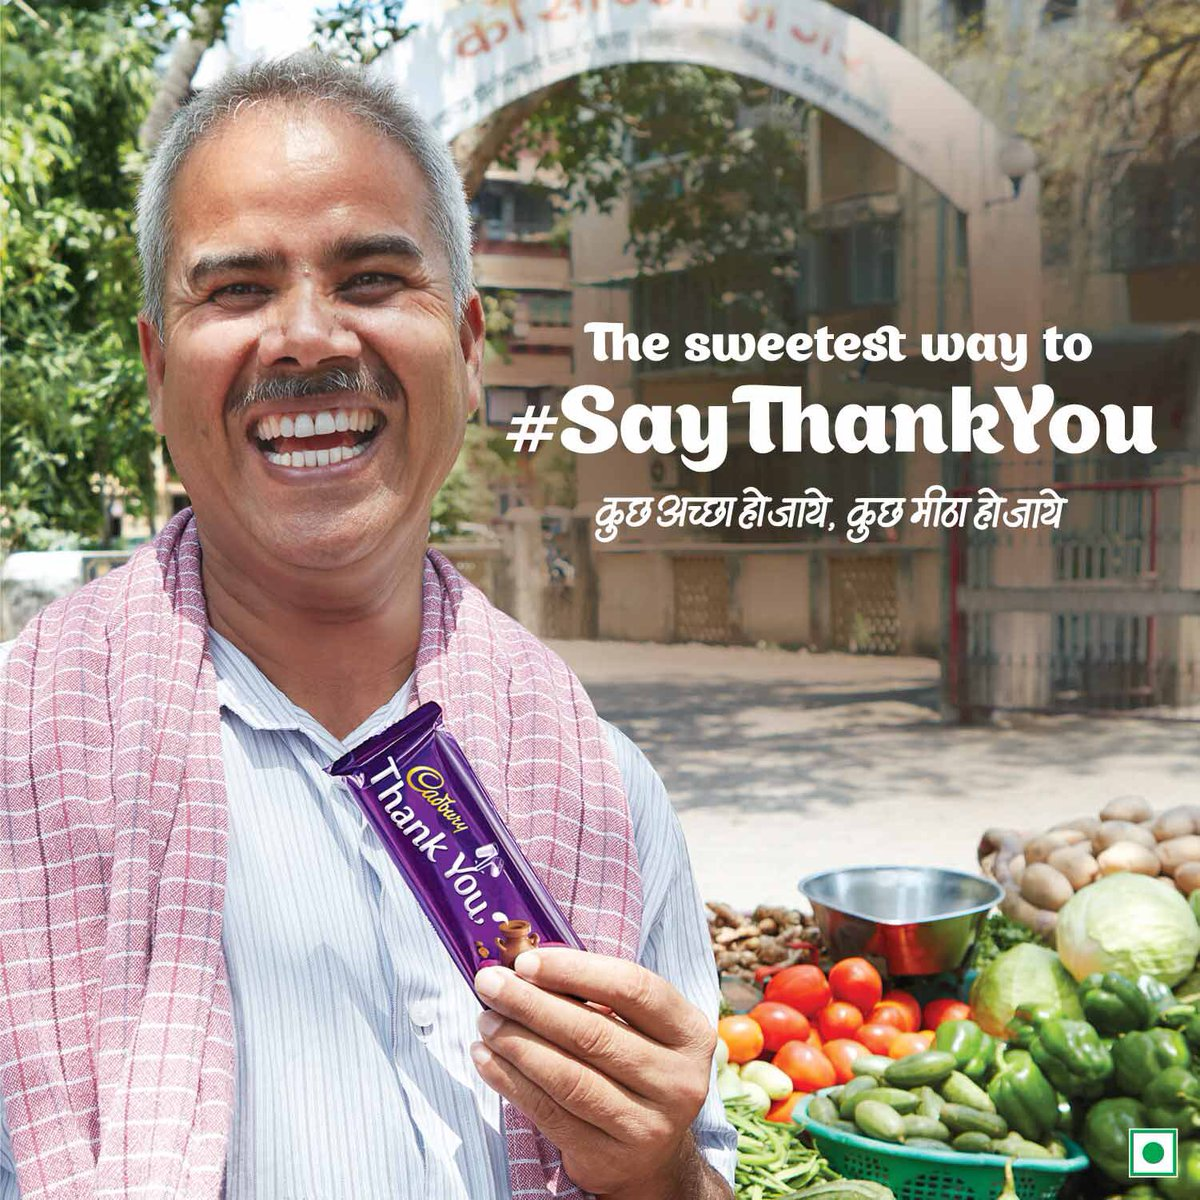 A little kindness goes a long way in helping those who make our lives easier. Every Cadbury Thank You bar helps provide health insurance to those who need it most. #SayThankYou #KuchAchhaHoJaayeKuchMeethaHoJaaye https://t.co/rJRnhwqc8F